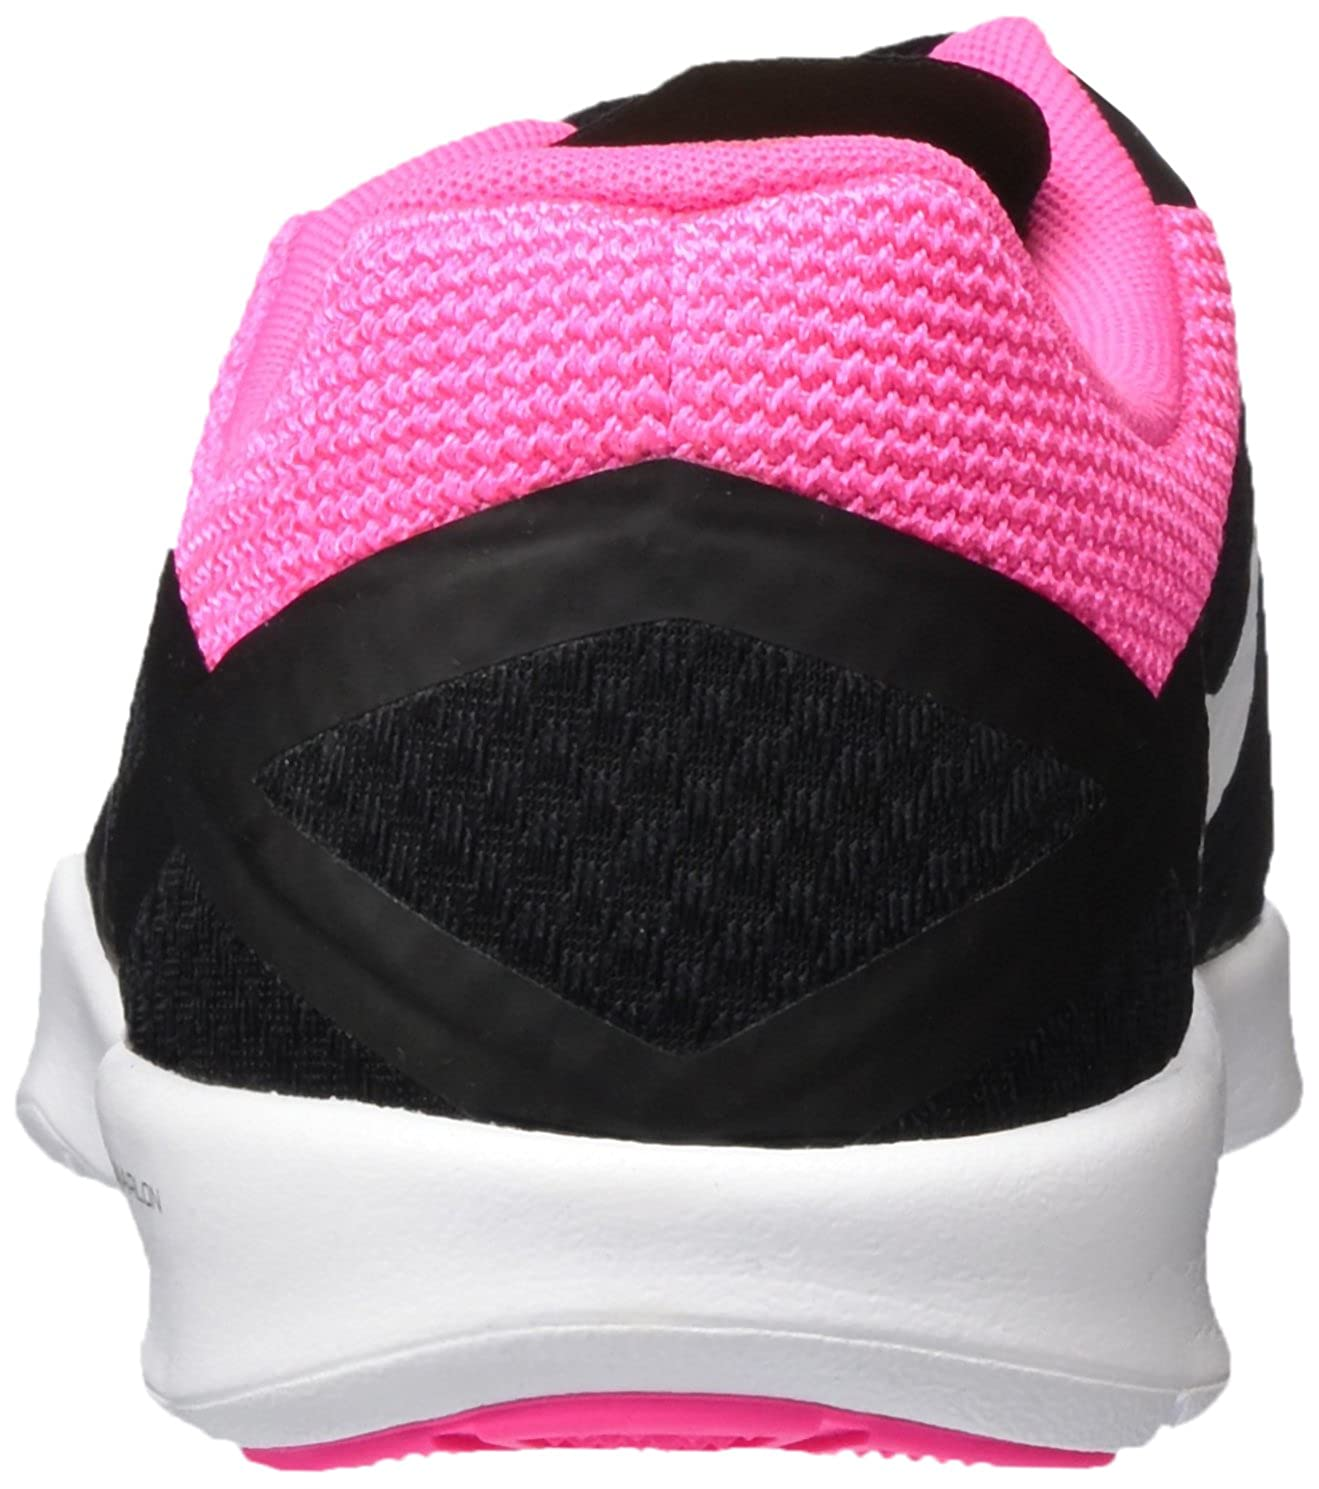 best service 83ac7 ba0c0 Nike Lunar Lux Tr, Women s Indoor Multisport Court Shoes  Amazon.co.uk   Shoes   Bags